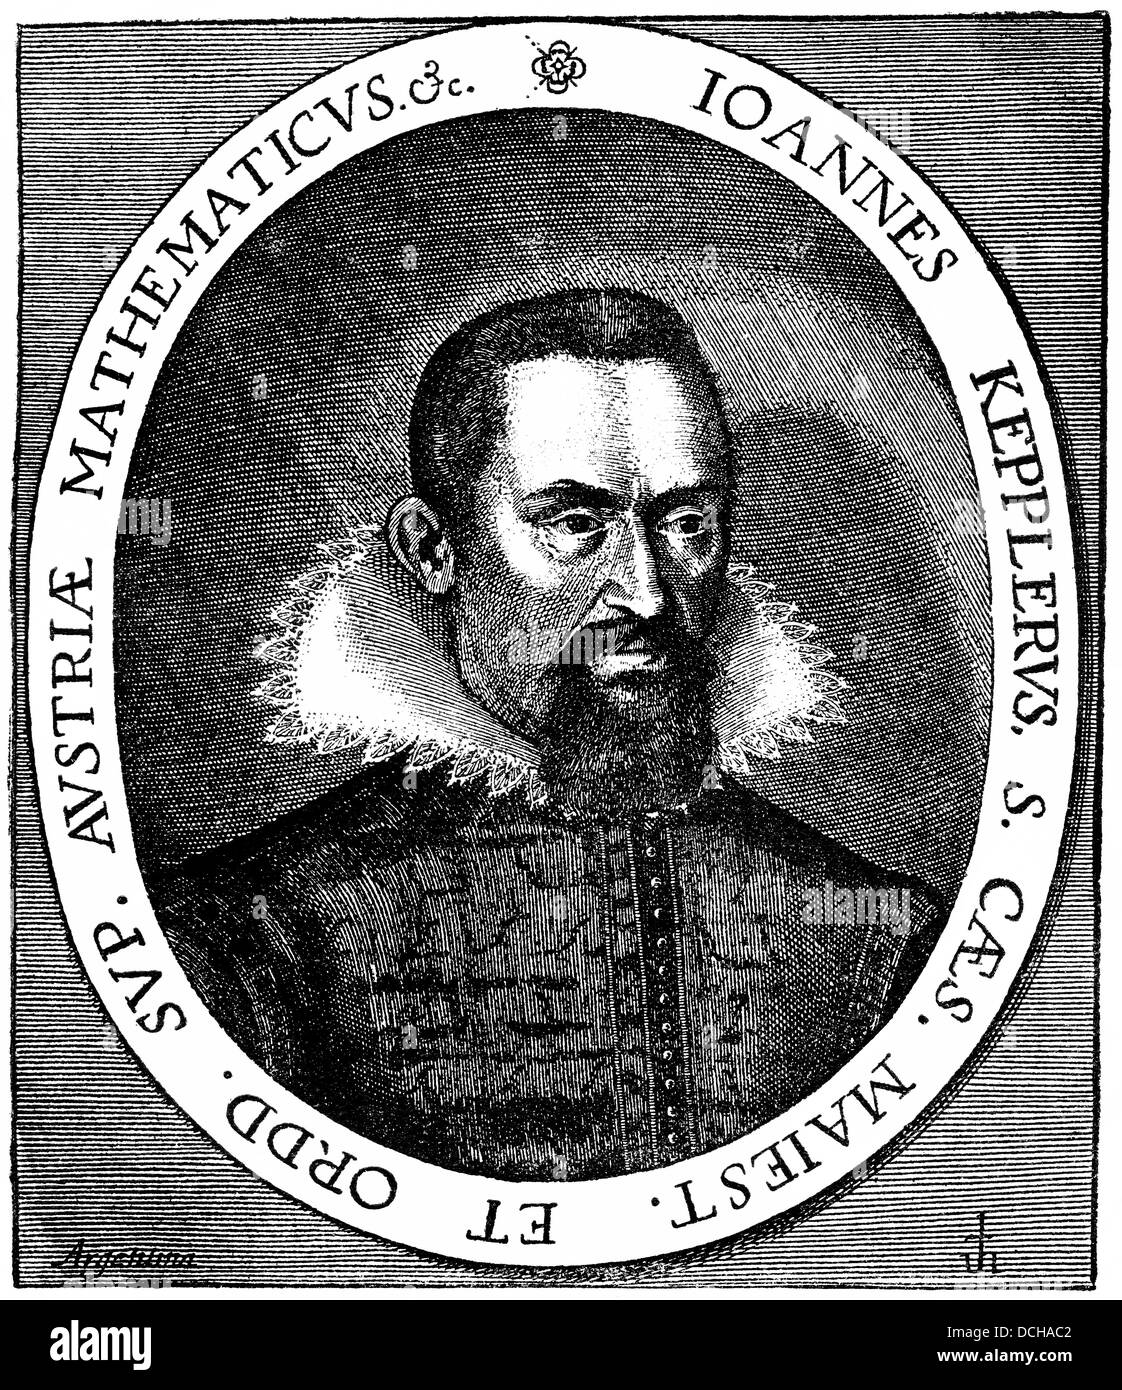 the life of johannes kepler the german astronomer Johannes kepler – the famed german astronomer – passed away 386 years ago today, on november 15, 1630 he calculated planetary orbits in great detail through careful observation and painstaking mathematical modeling read the works of kepler, and his reverence for his creator shines through .